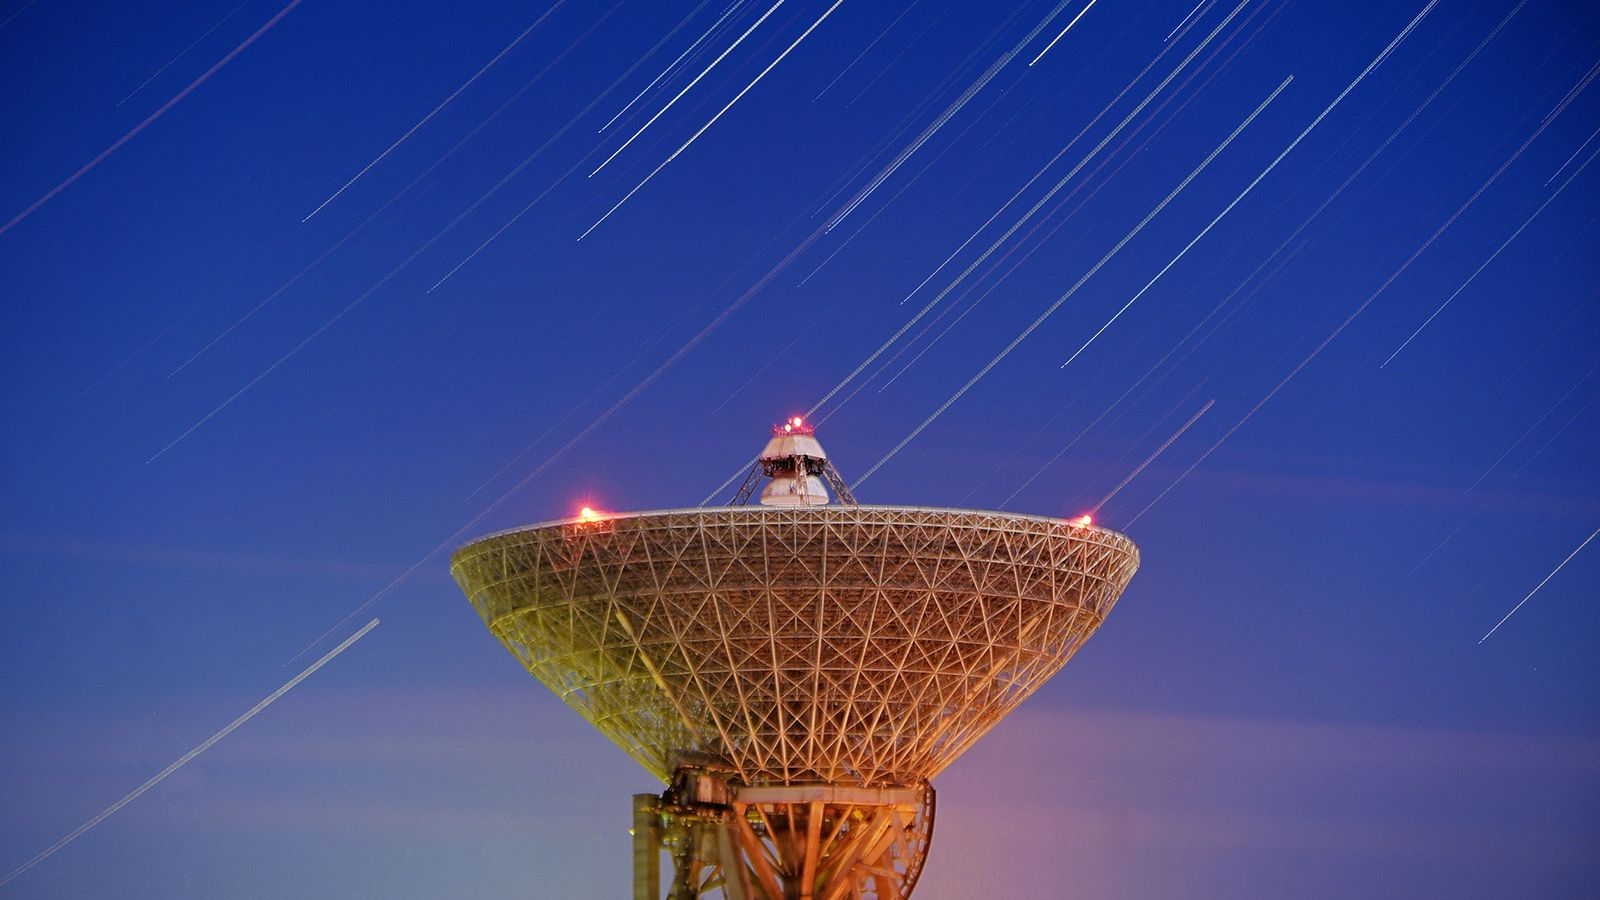 The annual Geminid meteor shower lights up the sky over the Galenki RT-70 radio telescope in ...